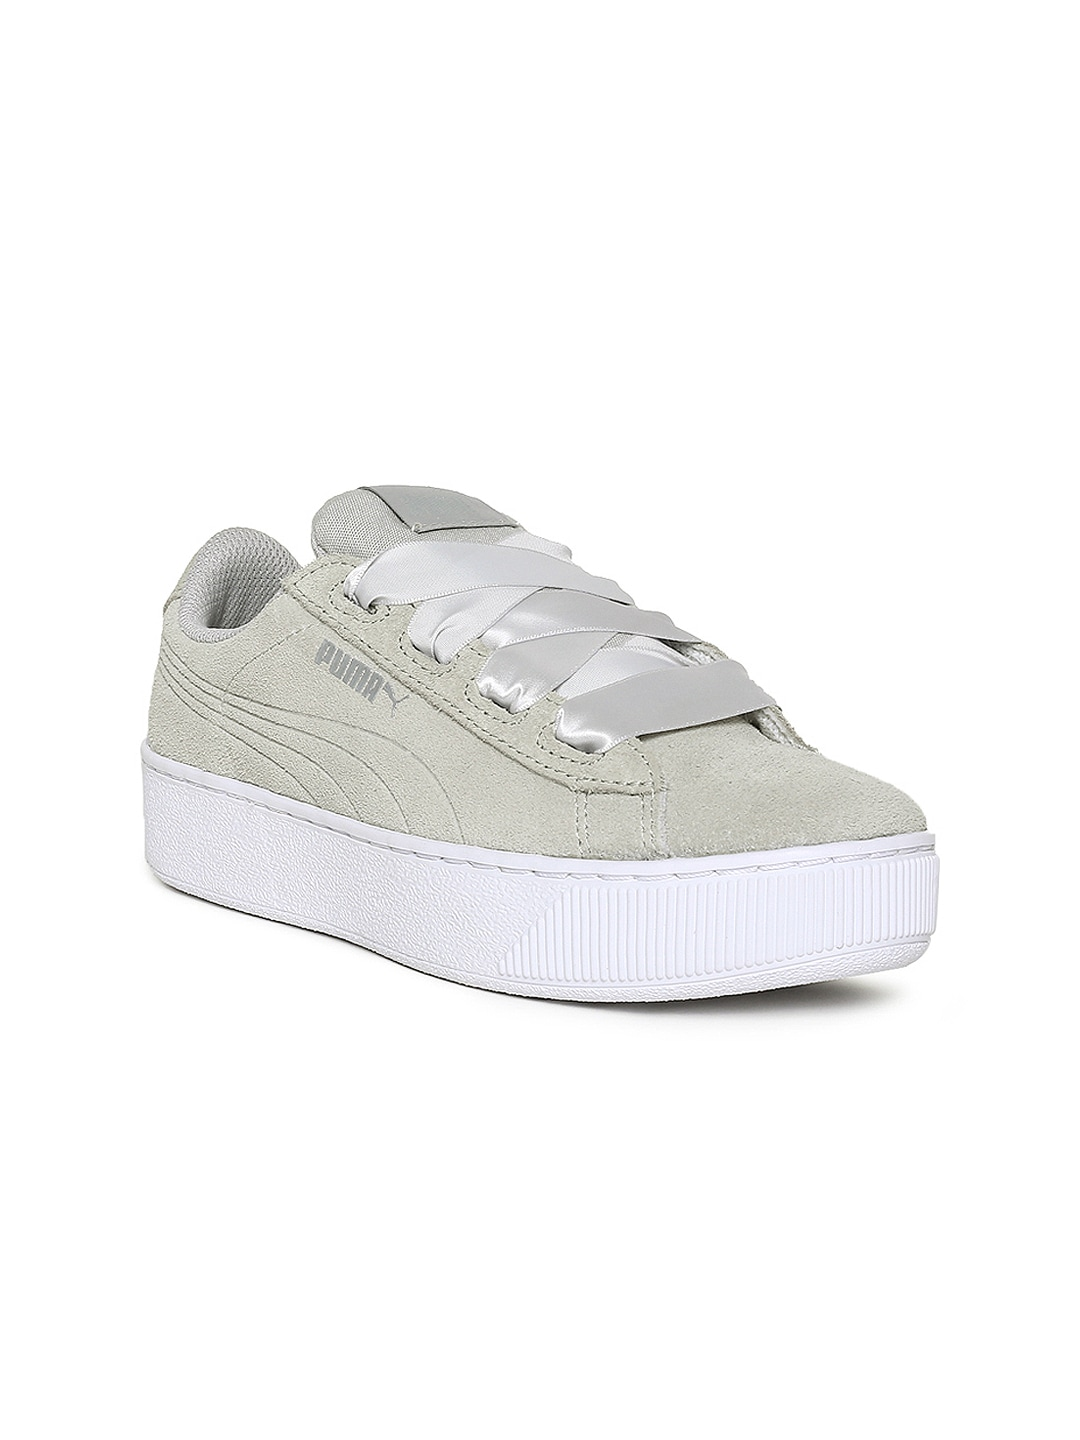 Puma For Kids - Buy Puma For Kids online in India 26385e254